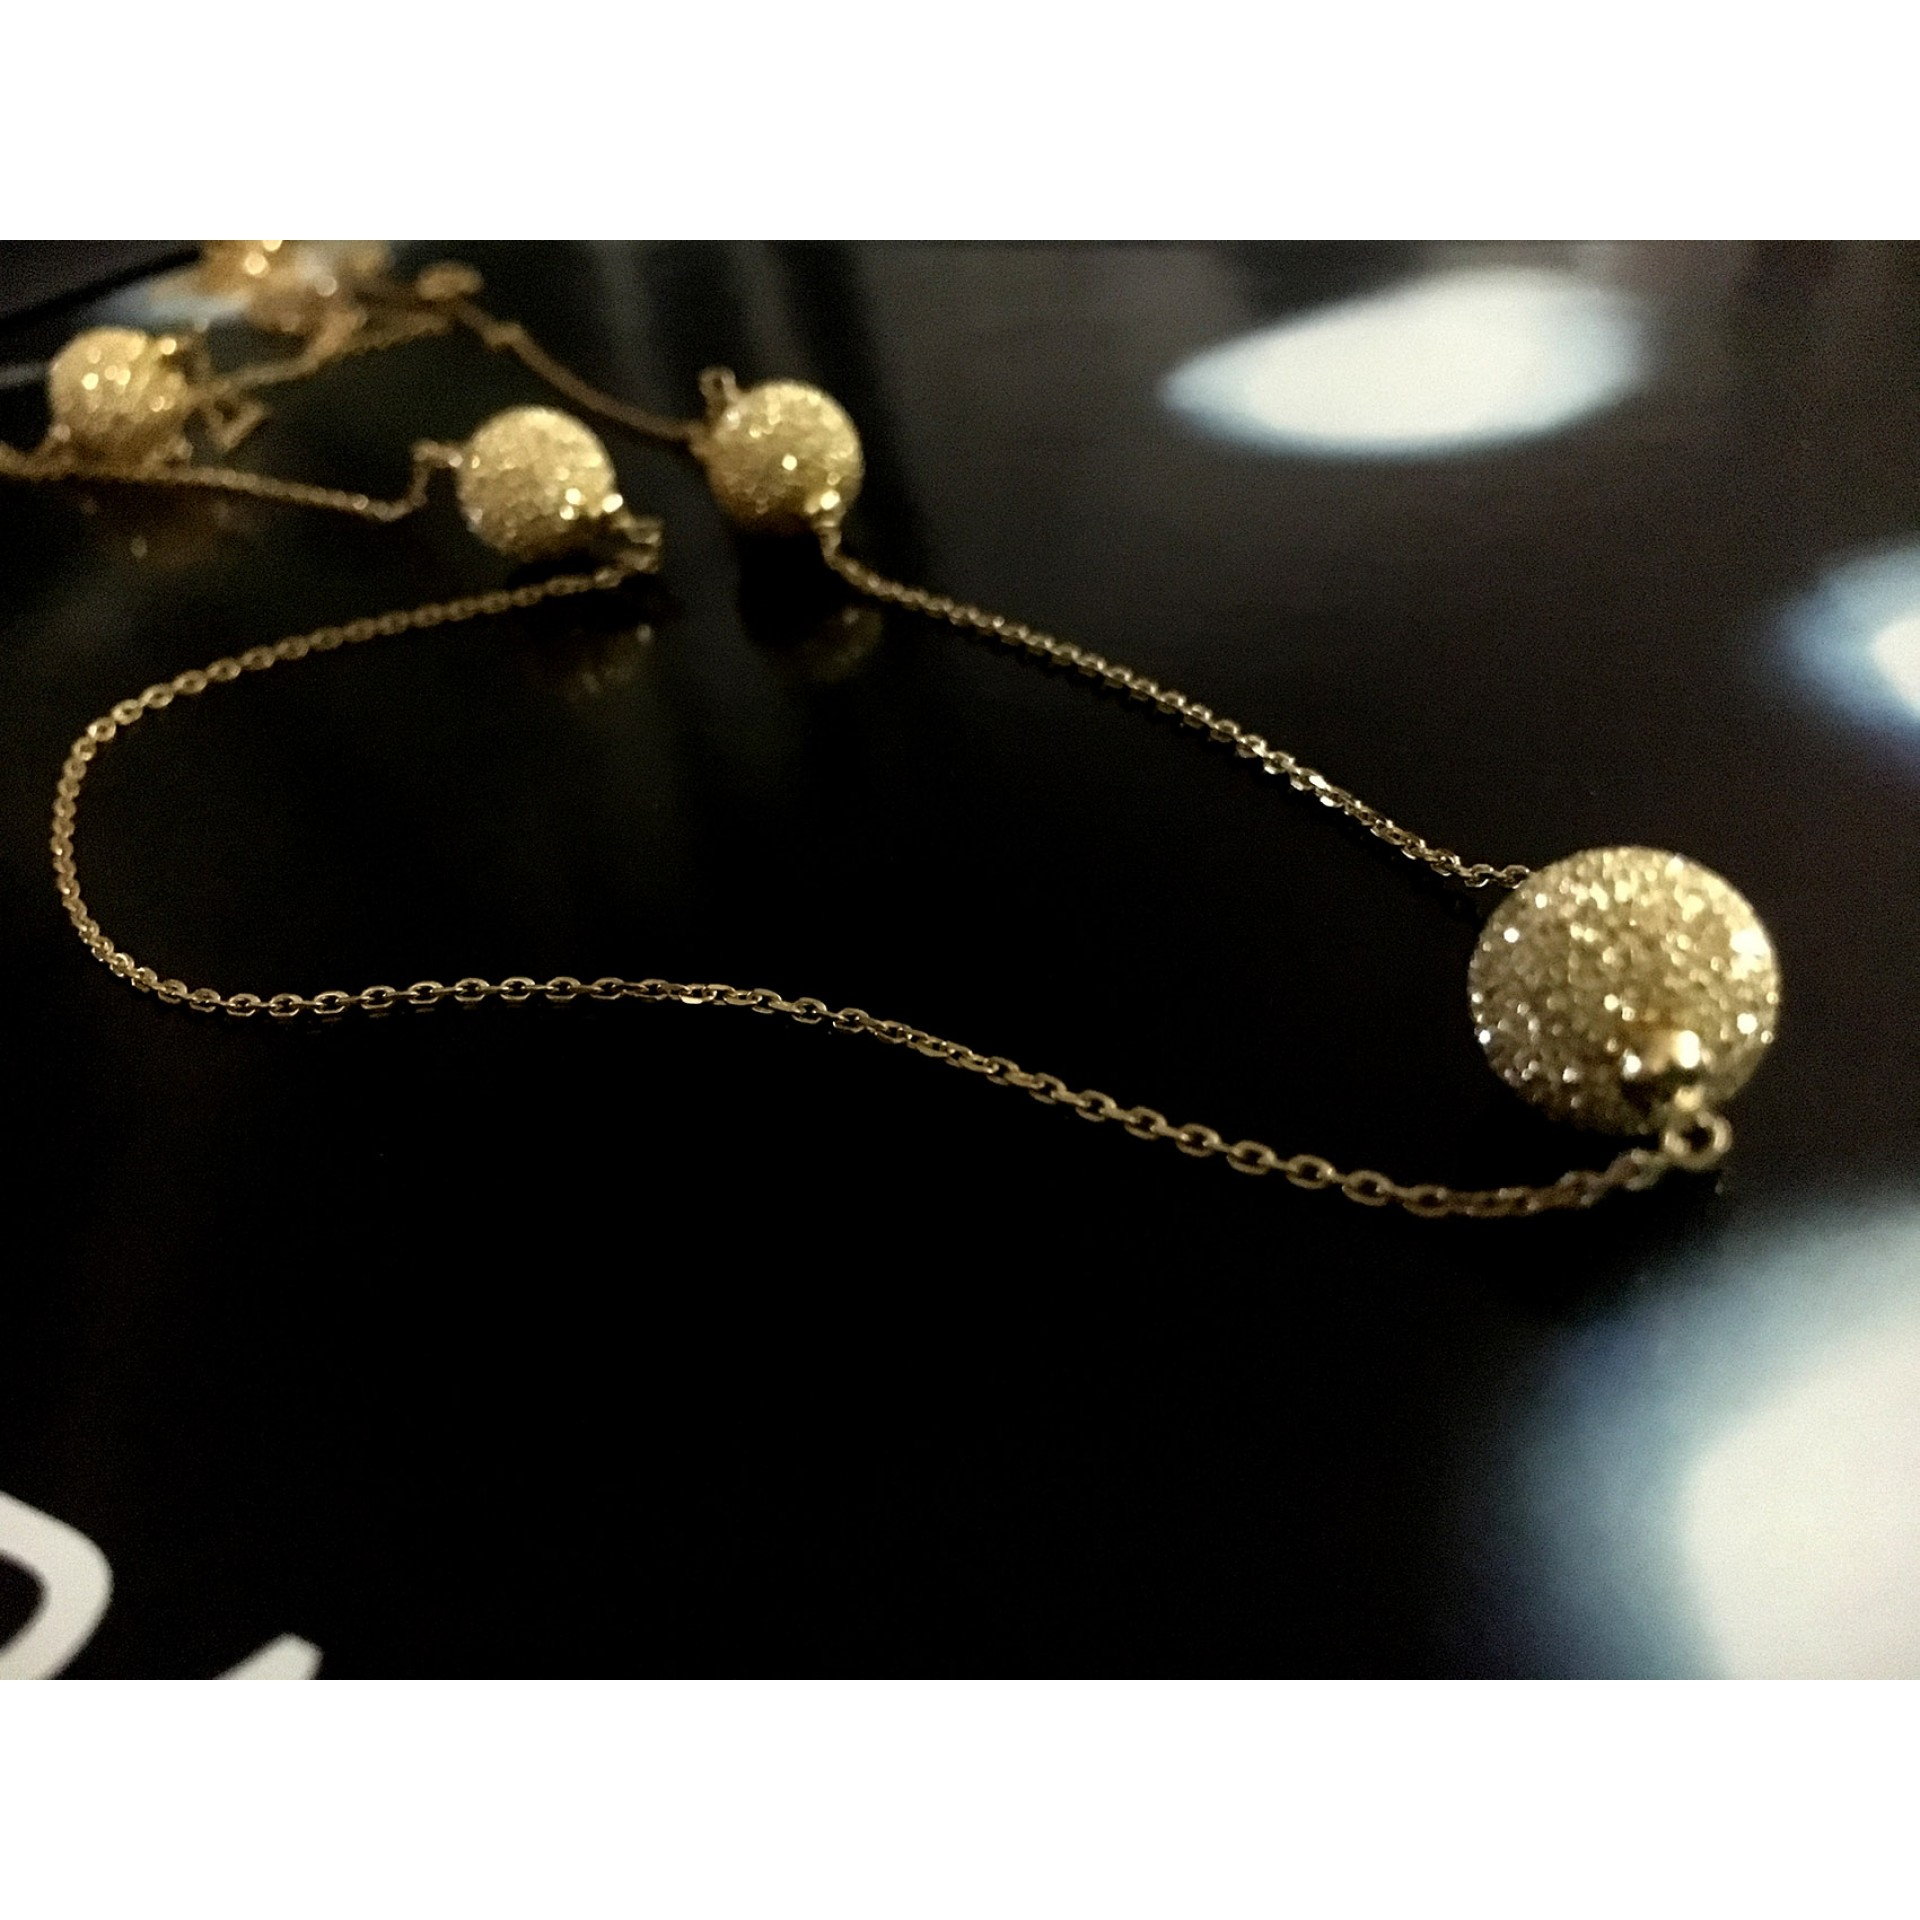 The Magic in Gold silver necklace